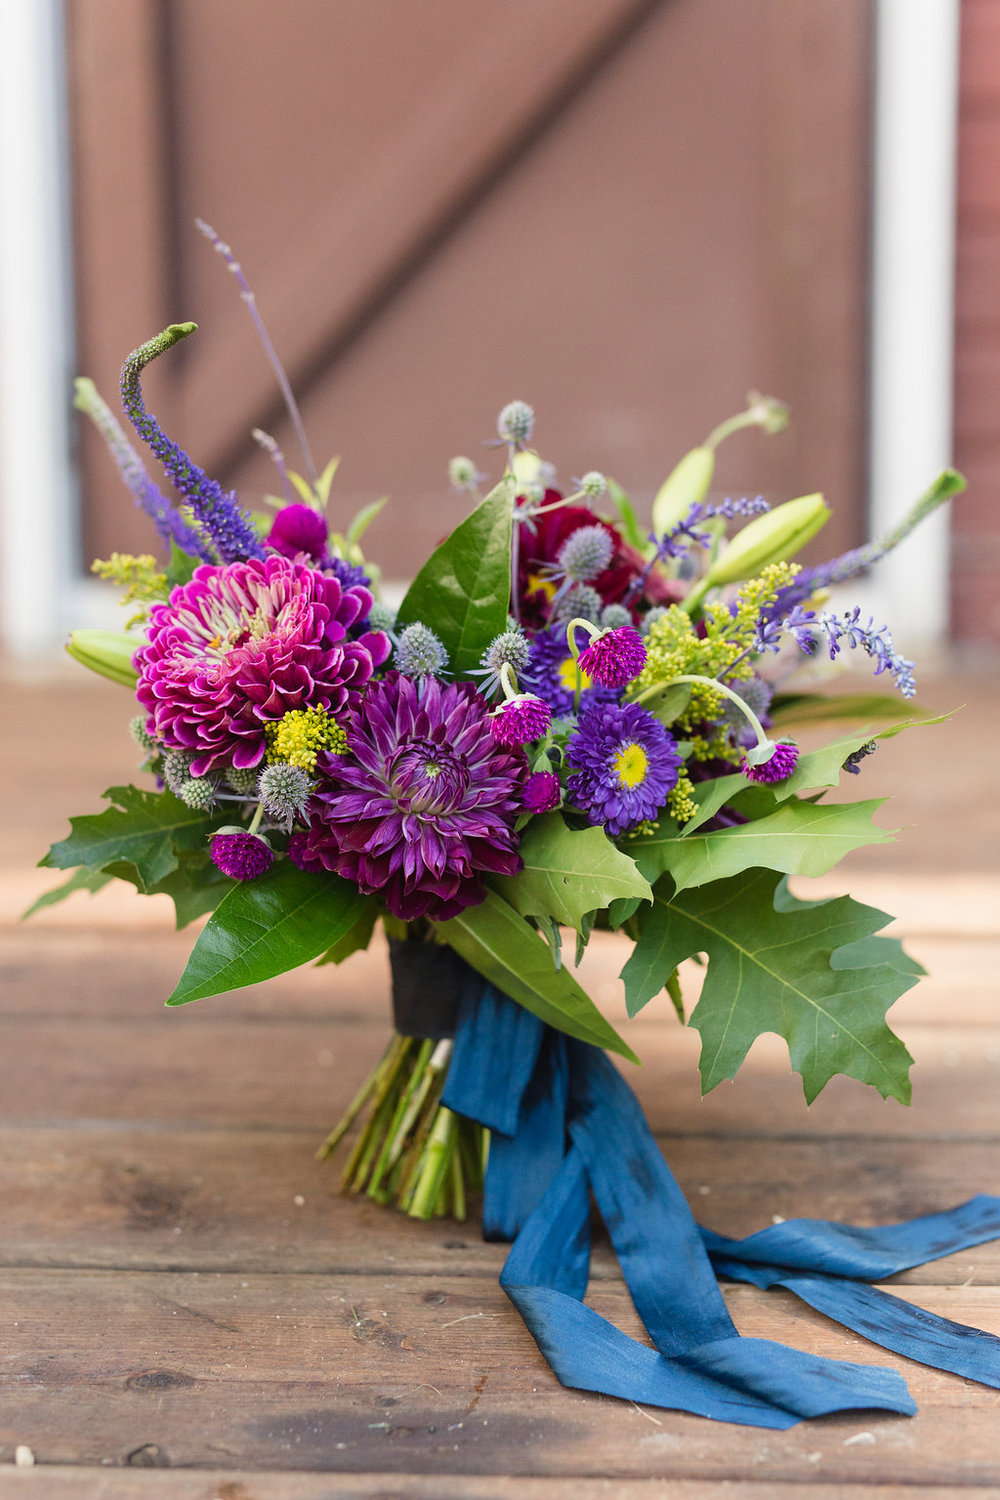 Jewel Tone Bridal Bouquet - Stone House Creative